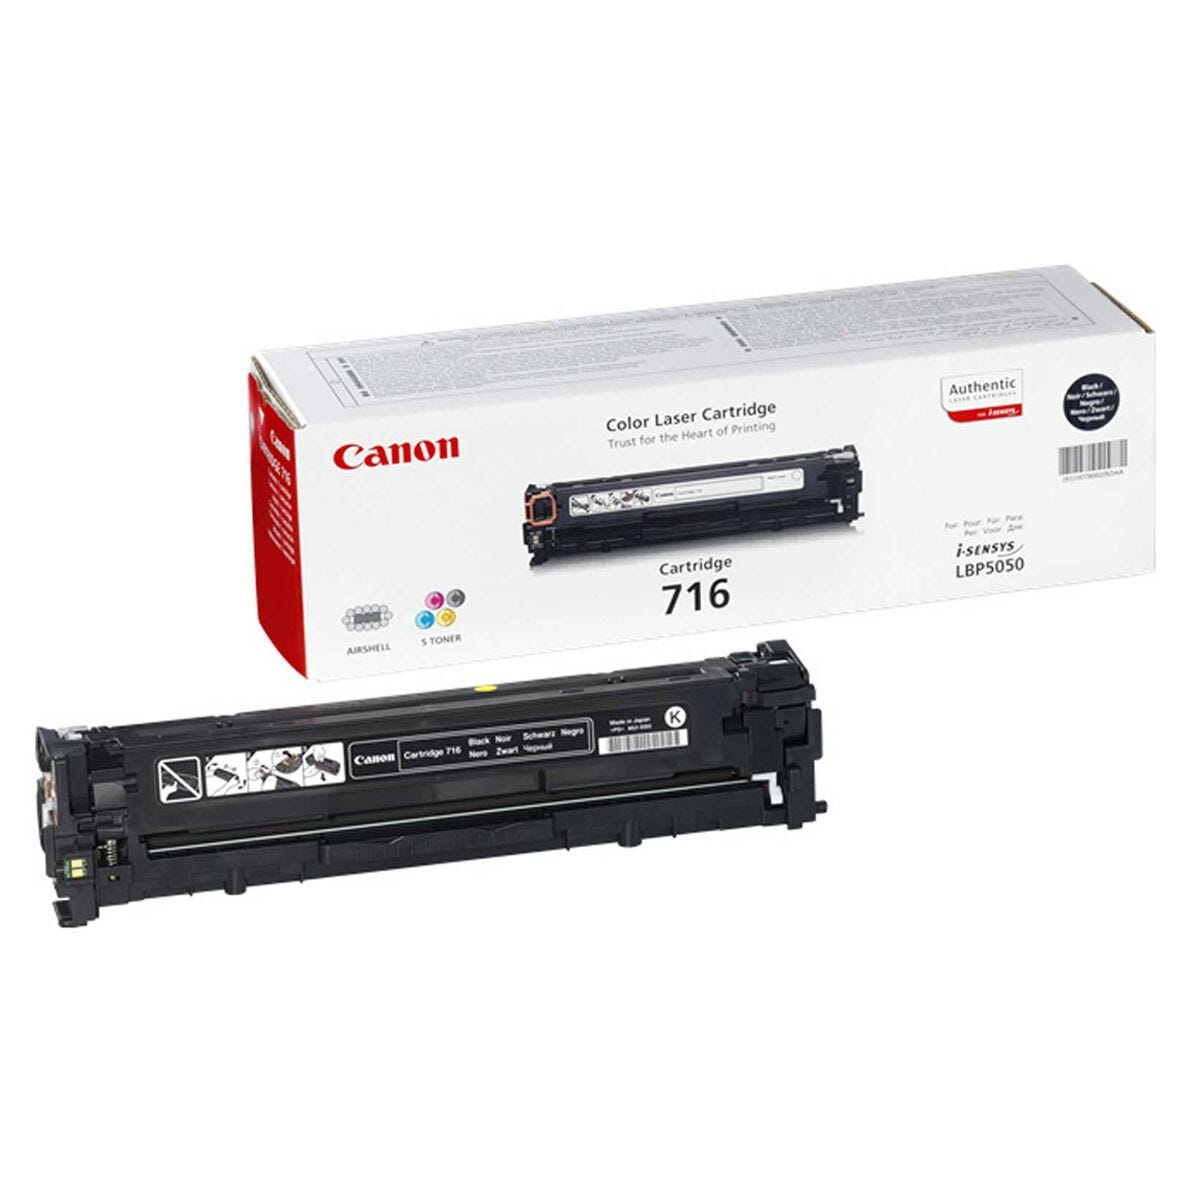 Canon CRG 716 Ink Printer Toner Cartridge 1980B002